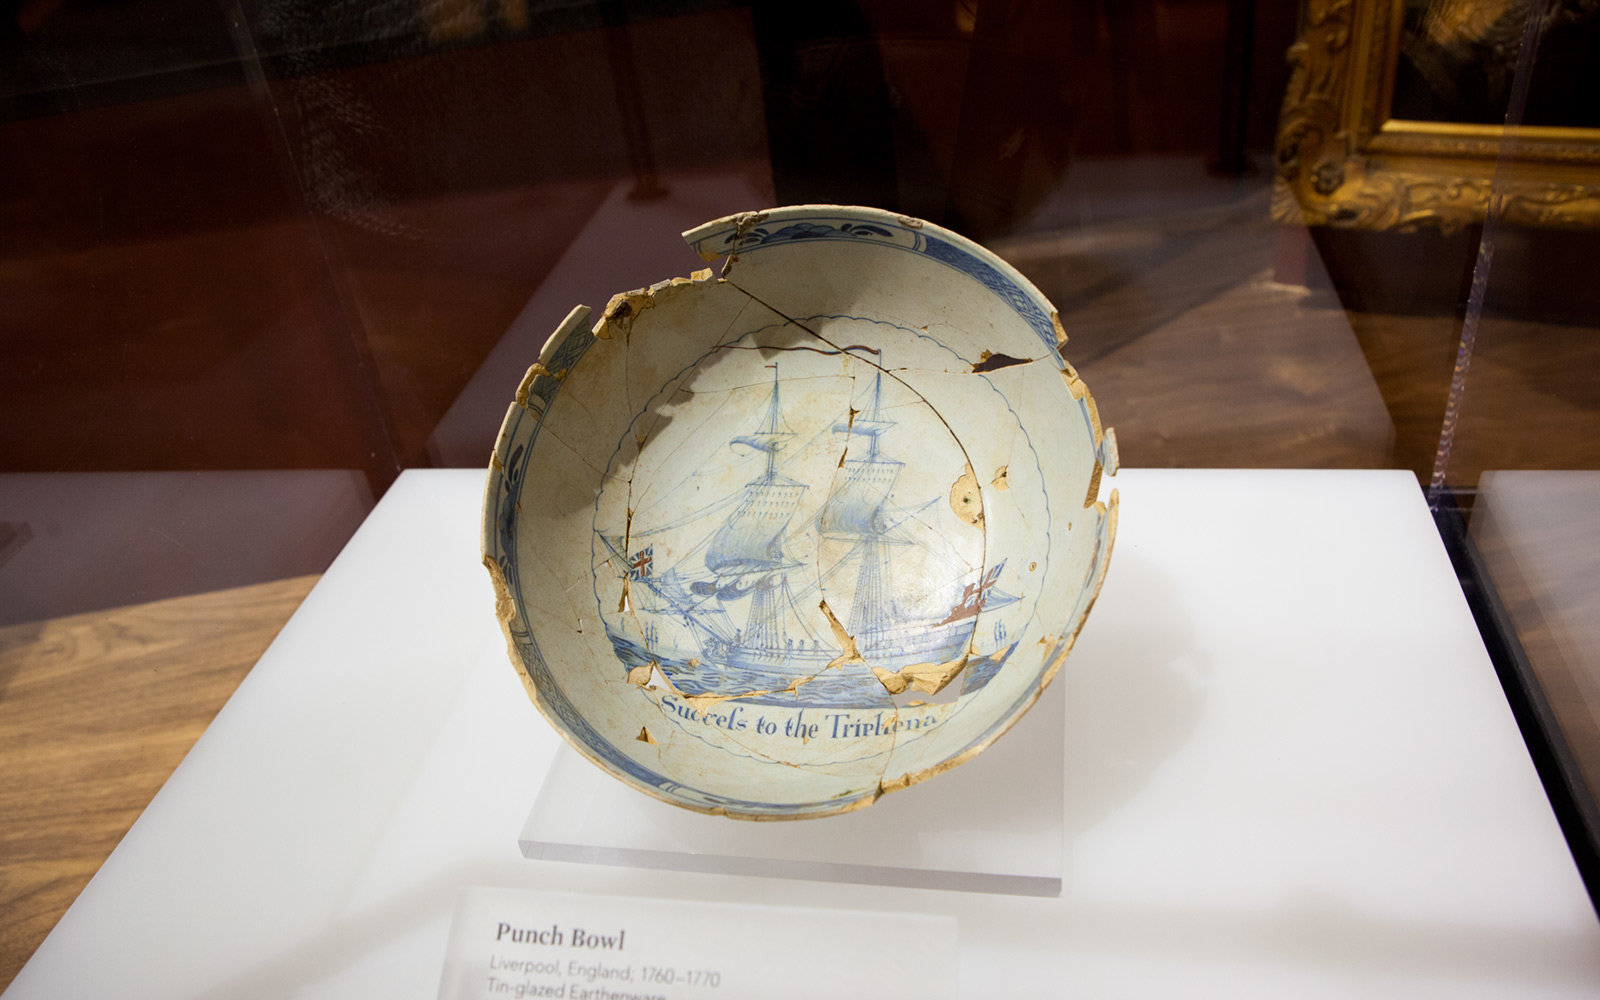 English Punch Bowl, Museum of the American Revolution, Philadelphia, Pennsylvania